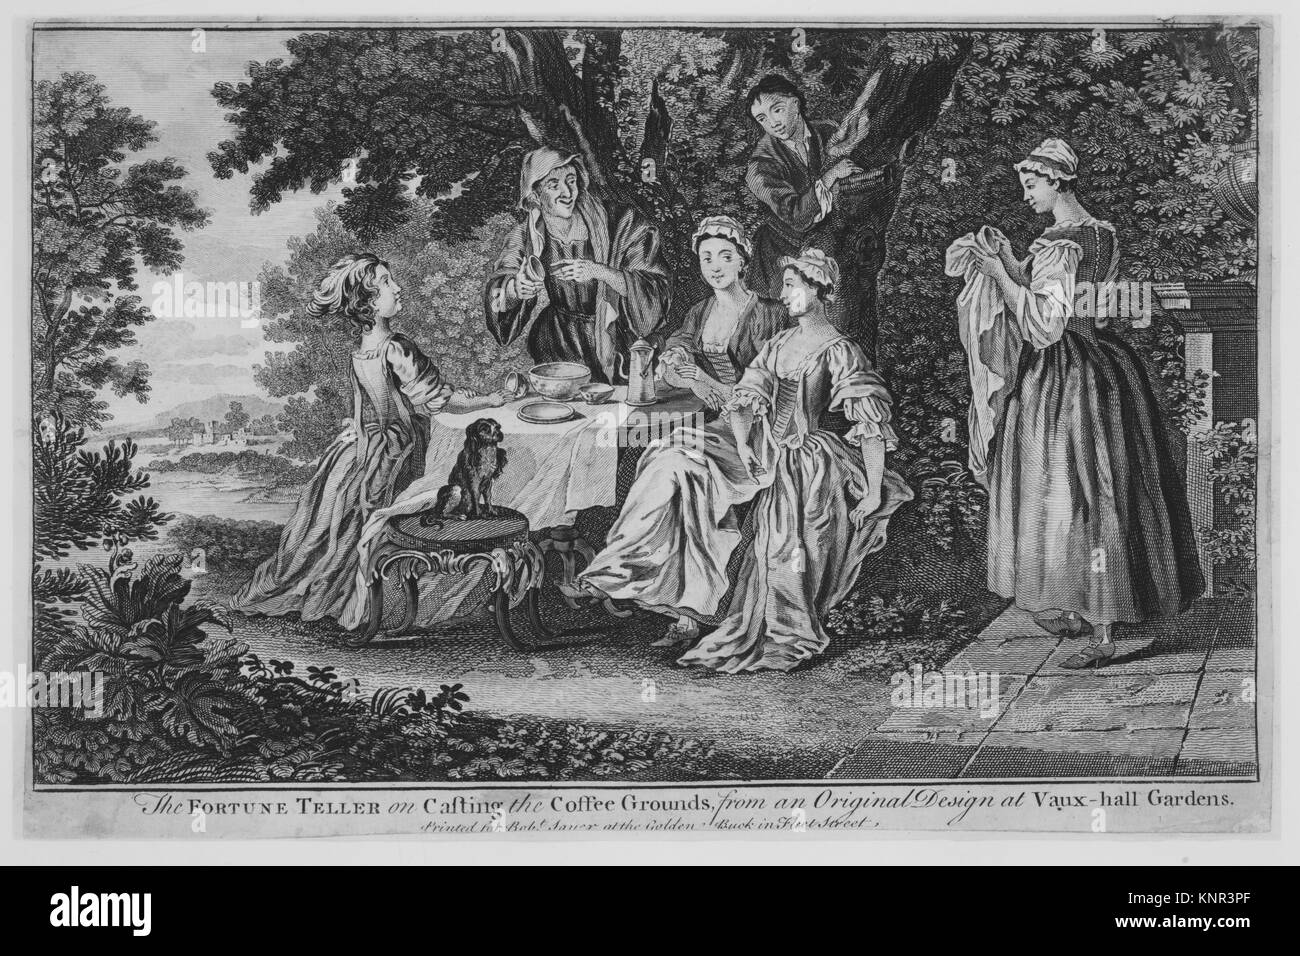 The Fortune Teller on casting the coffee grounds. Artist: Anonymous, British, 18th century; Date: 18th century; - Stock Image